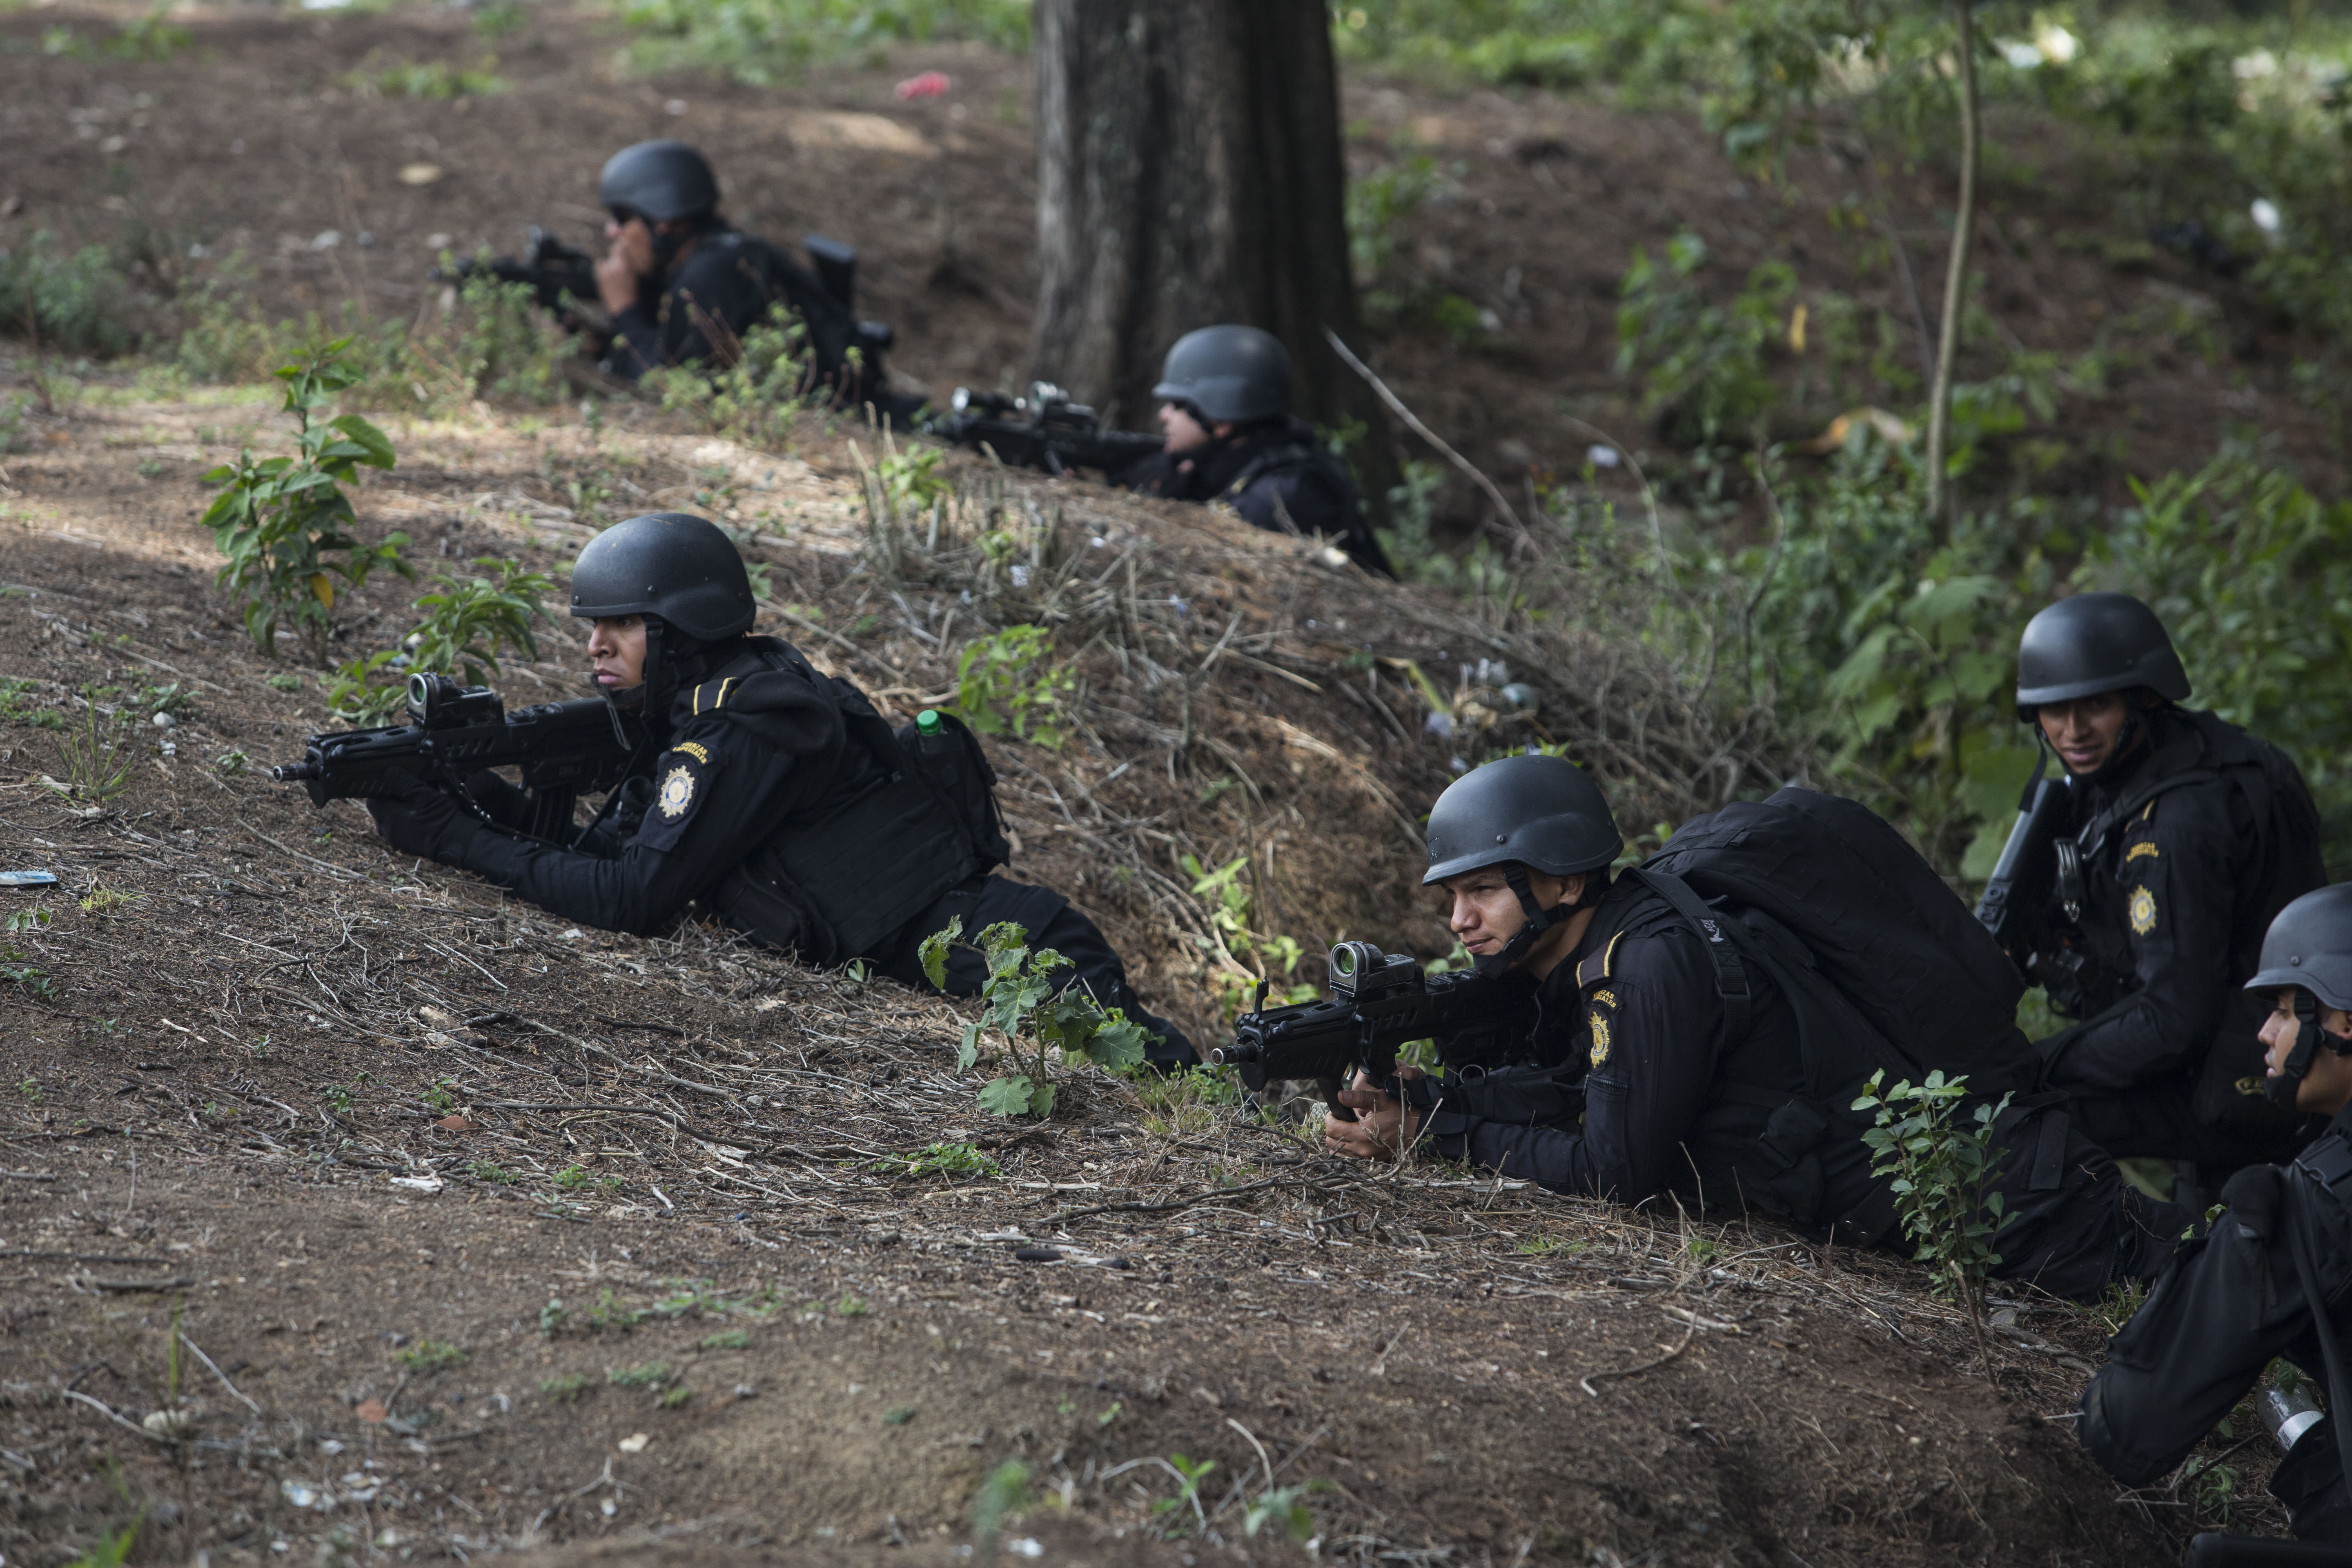 Special task force police take position outside the Pavon Rehabilitation Model Farm after a shooting inside the jail in Fraijanes, Guatemala, Tuesday, May 7, 2019. At least three people were killed and 10 people were wounded in the shooting, authorities said. (AP Photo/Oliver De Ros)